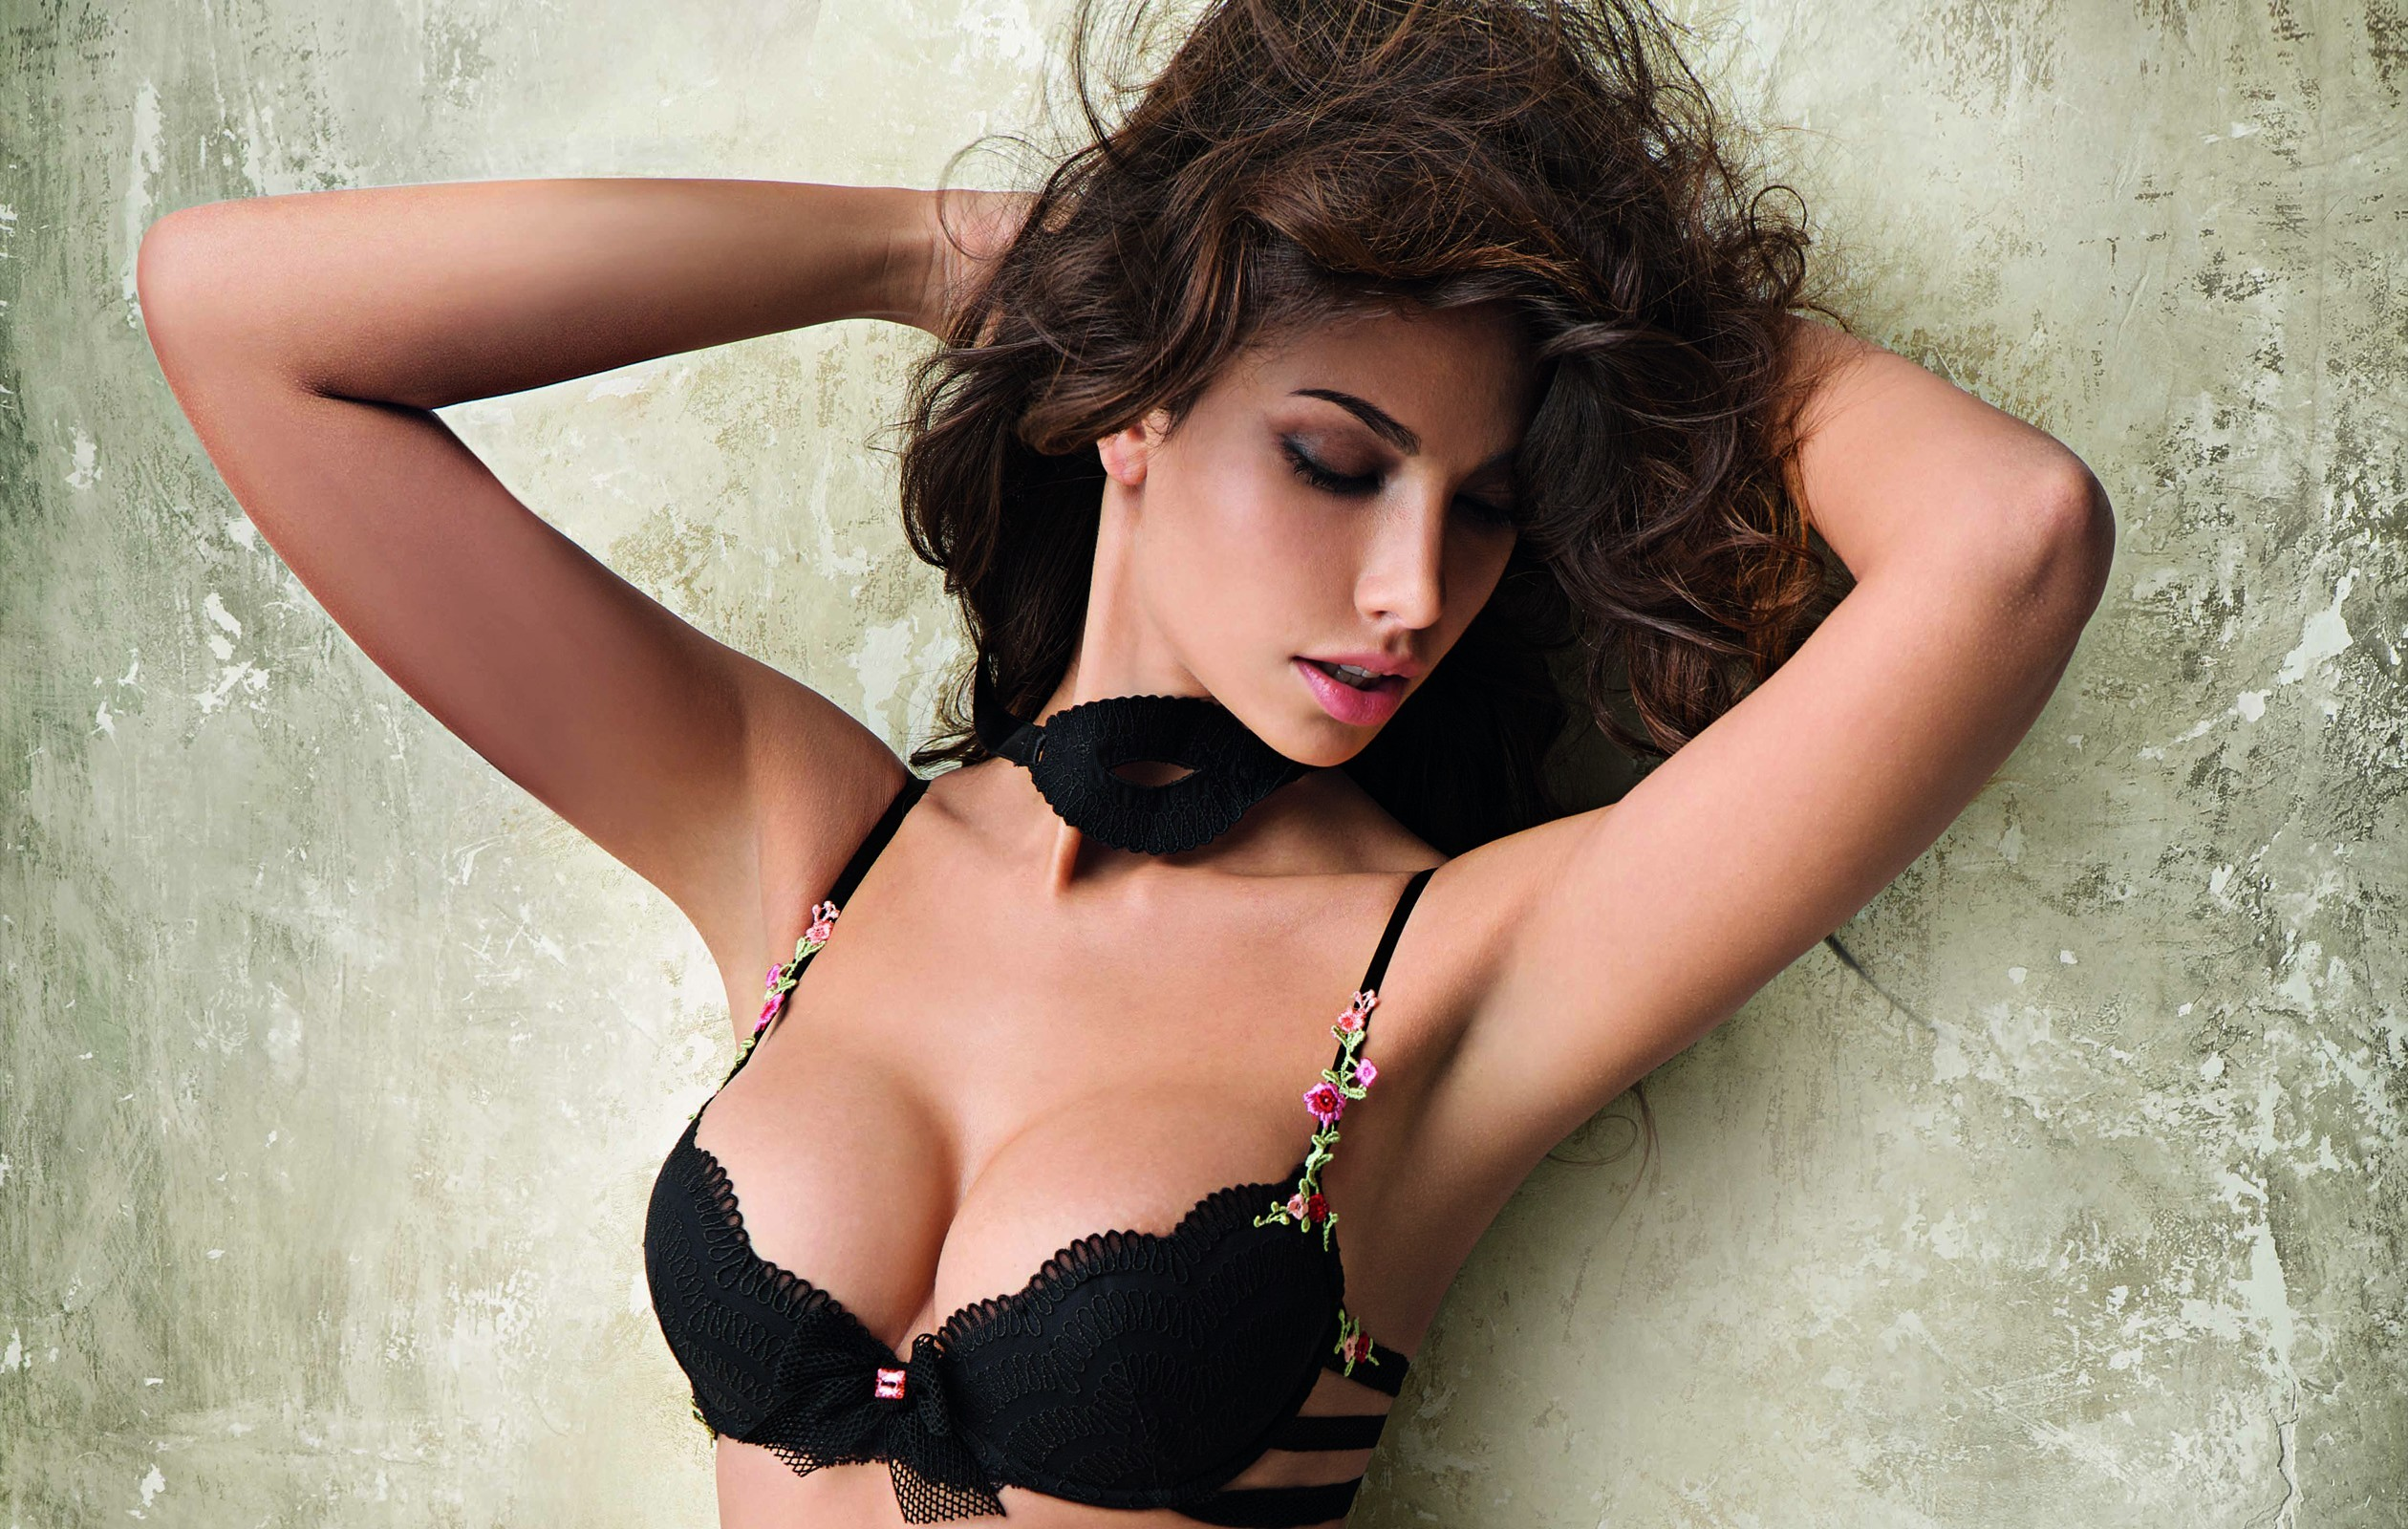 woman bra Madalina Diana Ghenea HD Wallpaper